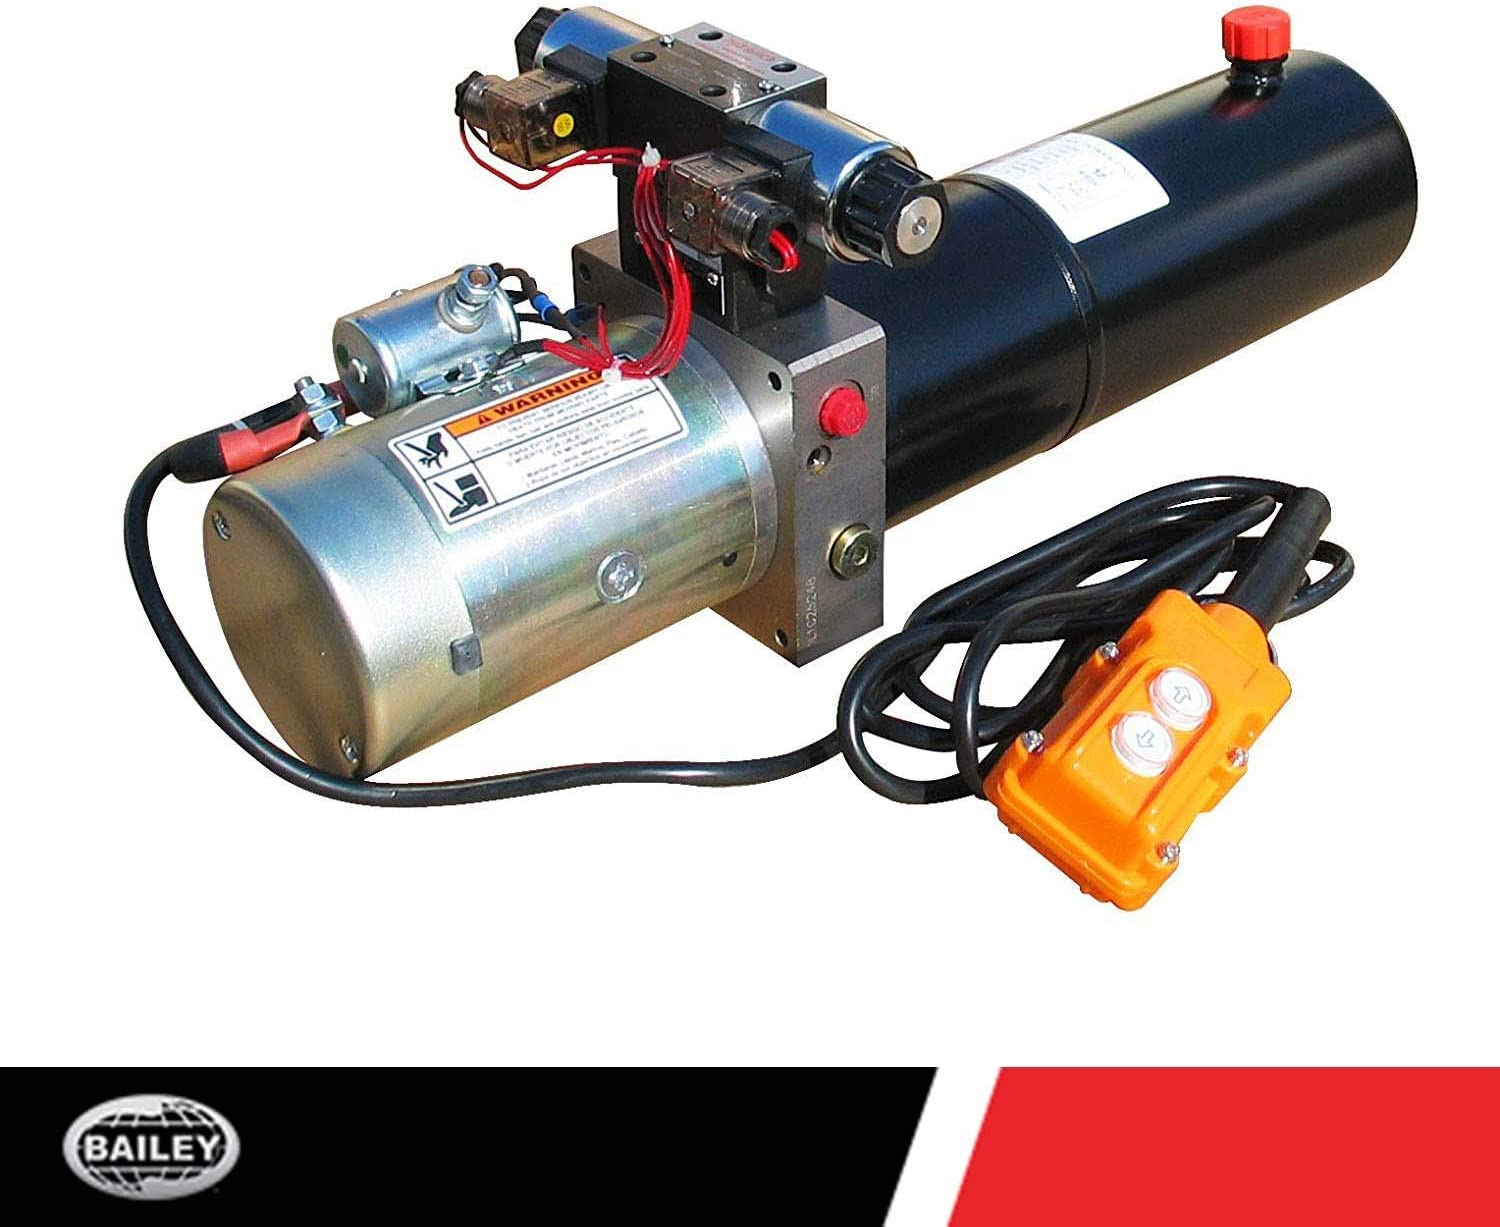 Maxim Hydraulic Power Unit 1 Gallon Poly Tank @2500 PSI #6 SAE Port Size and Solenoid Operated With HPU Dimensions: 16.25 L x 8.3 W x 8 H 12V DC, Single Acting : 1.3 GPM Flow 4 QT